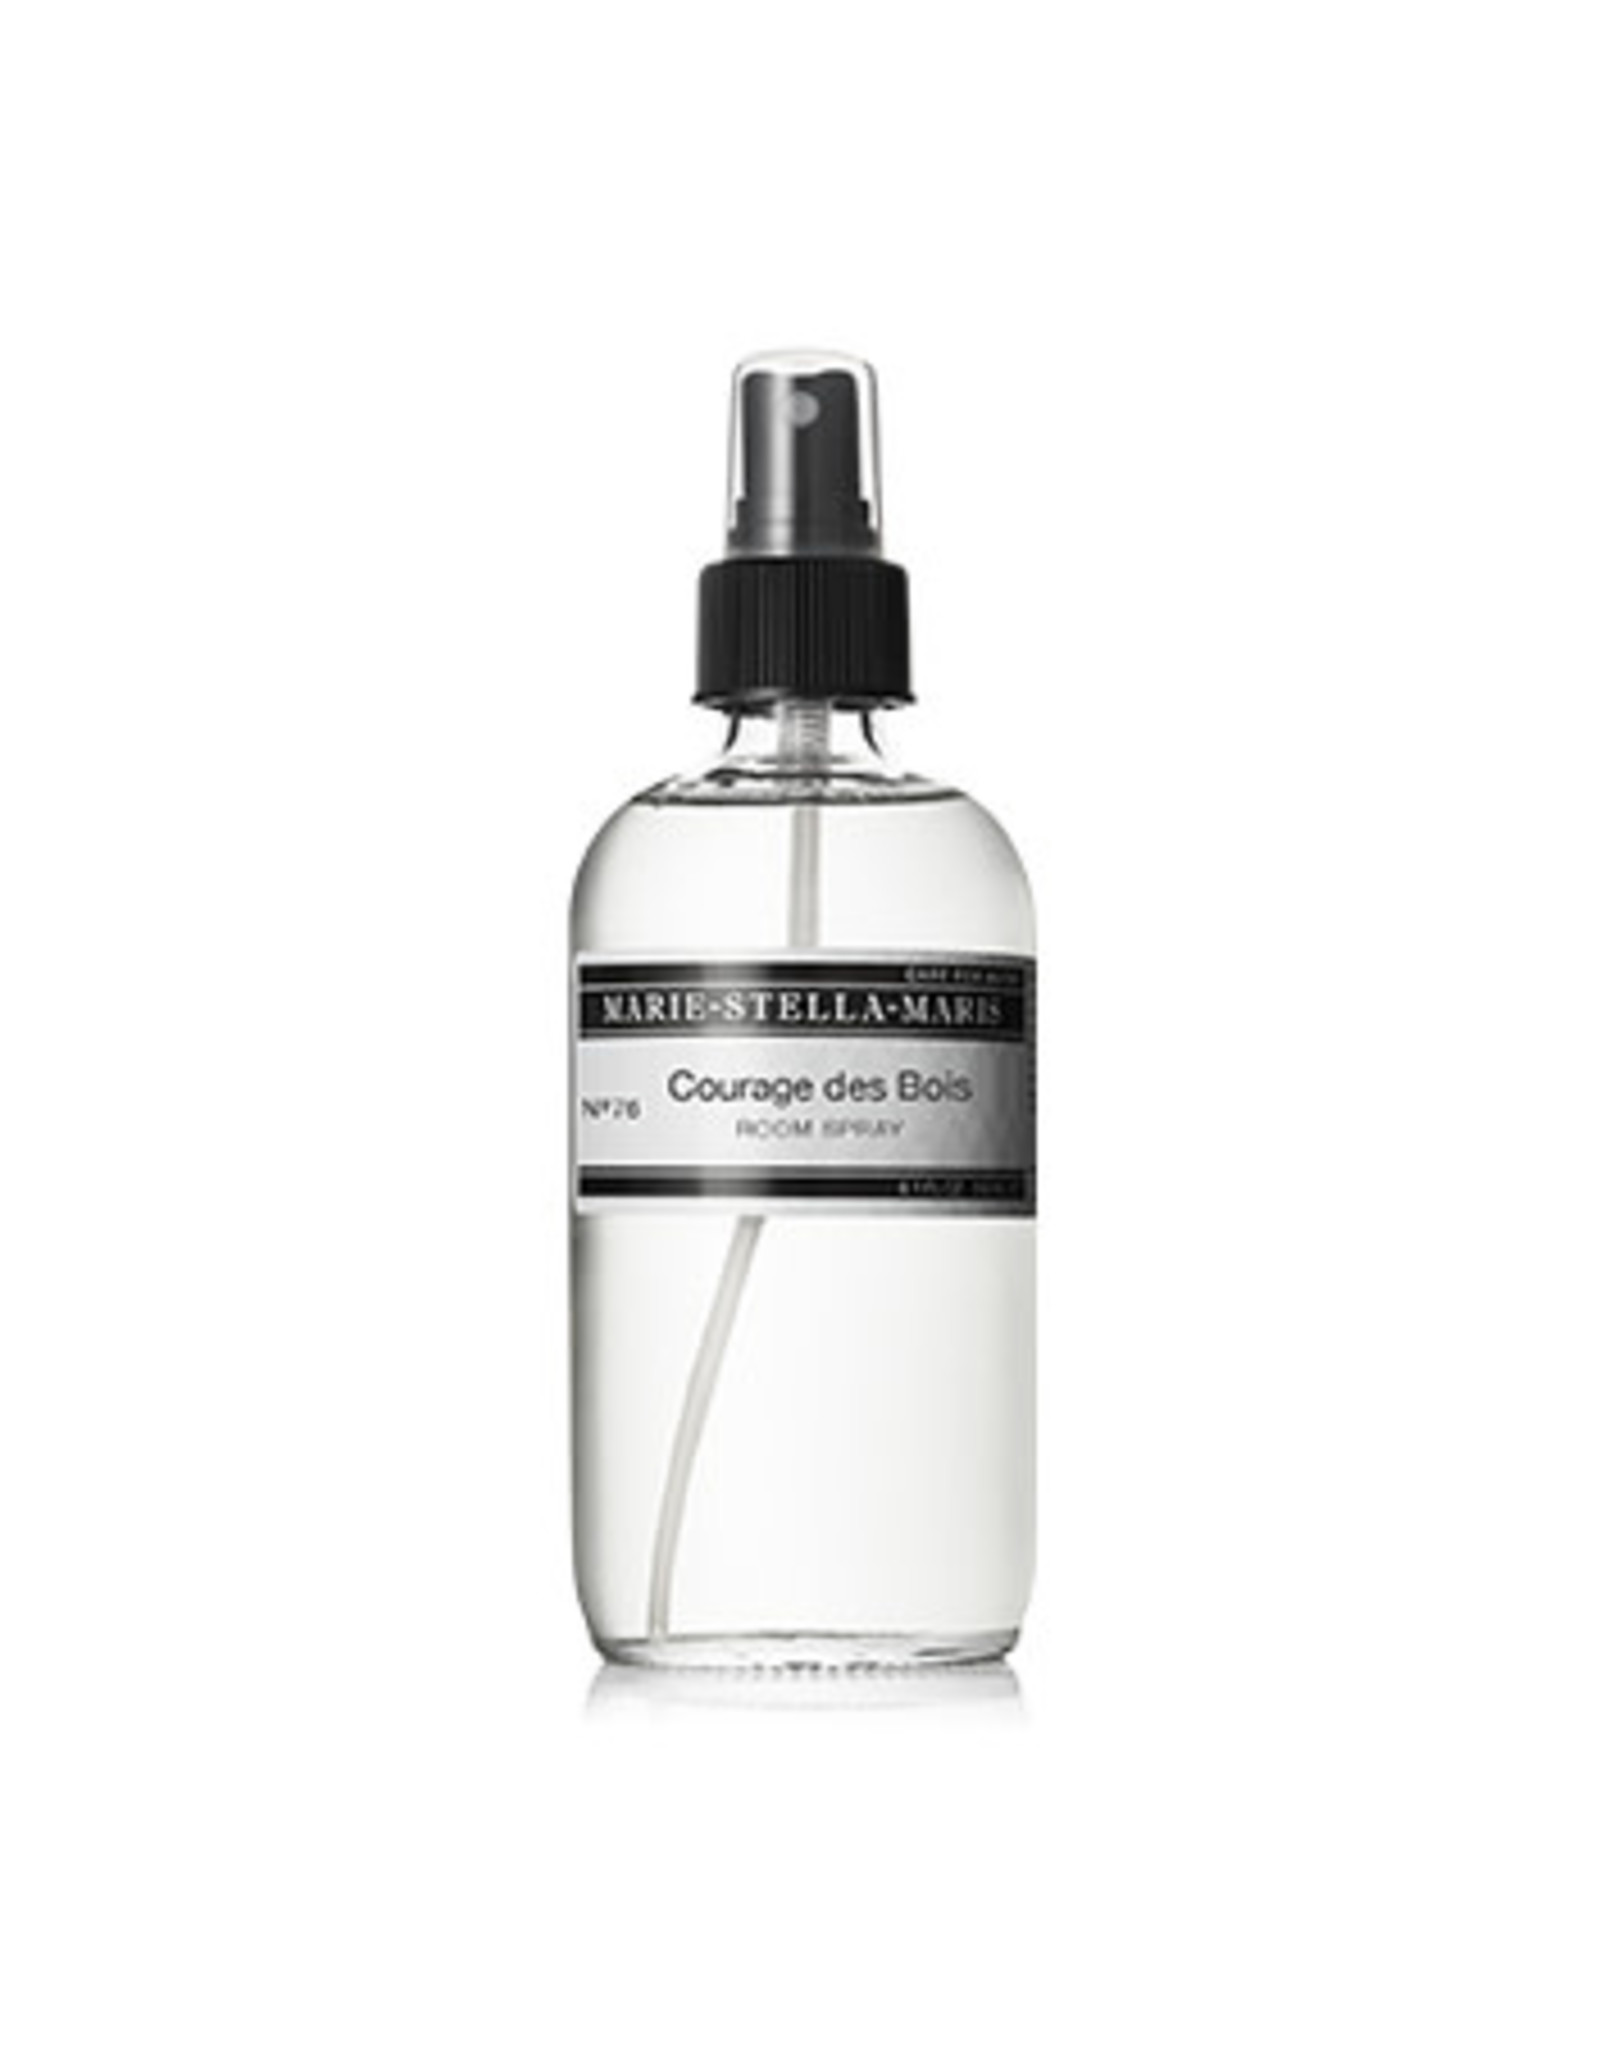 Marie-Stella-Maris Room Spray Courage des Bois